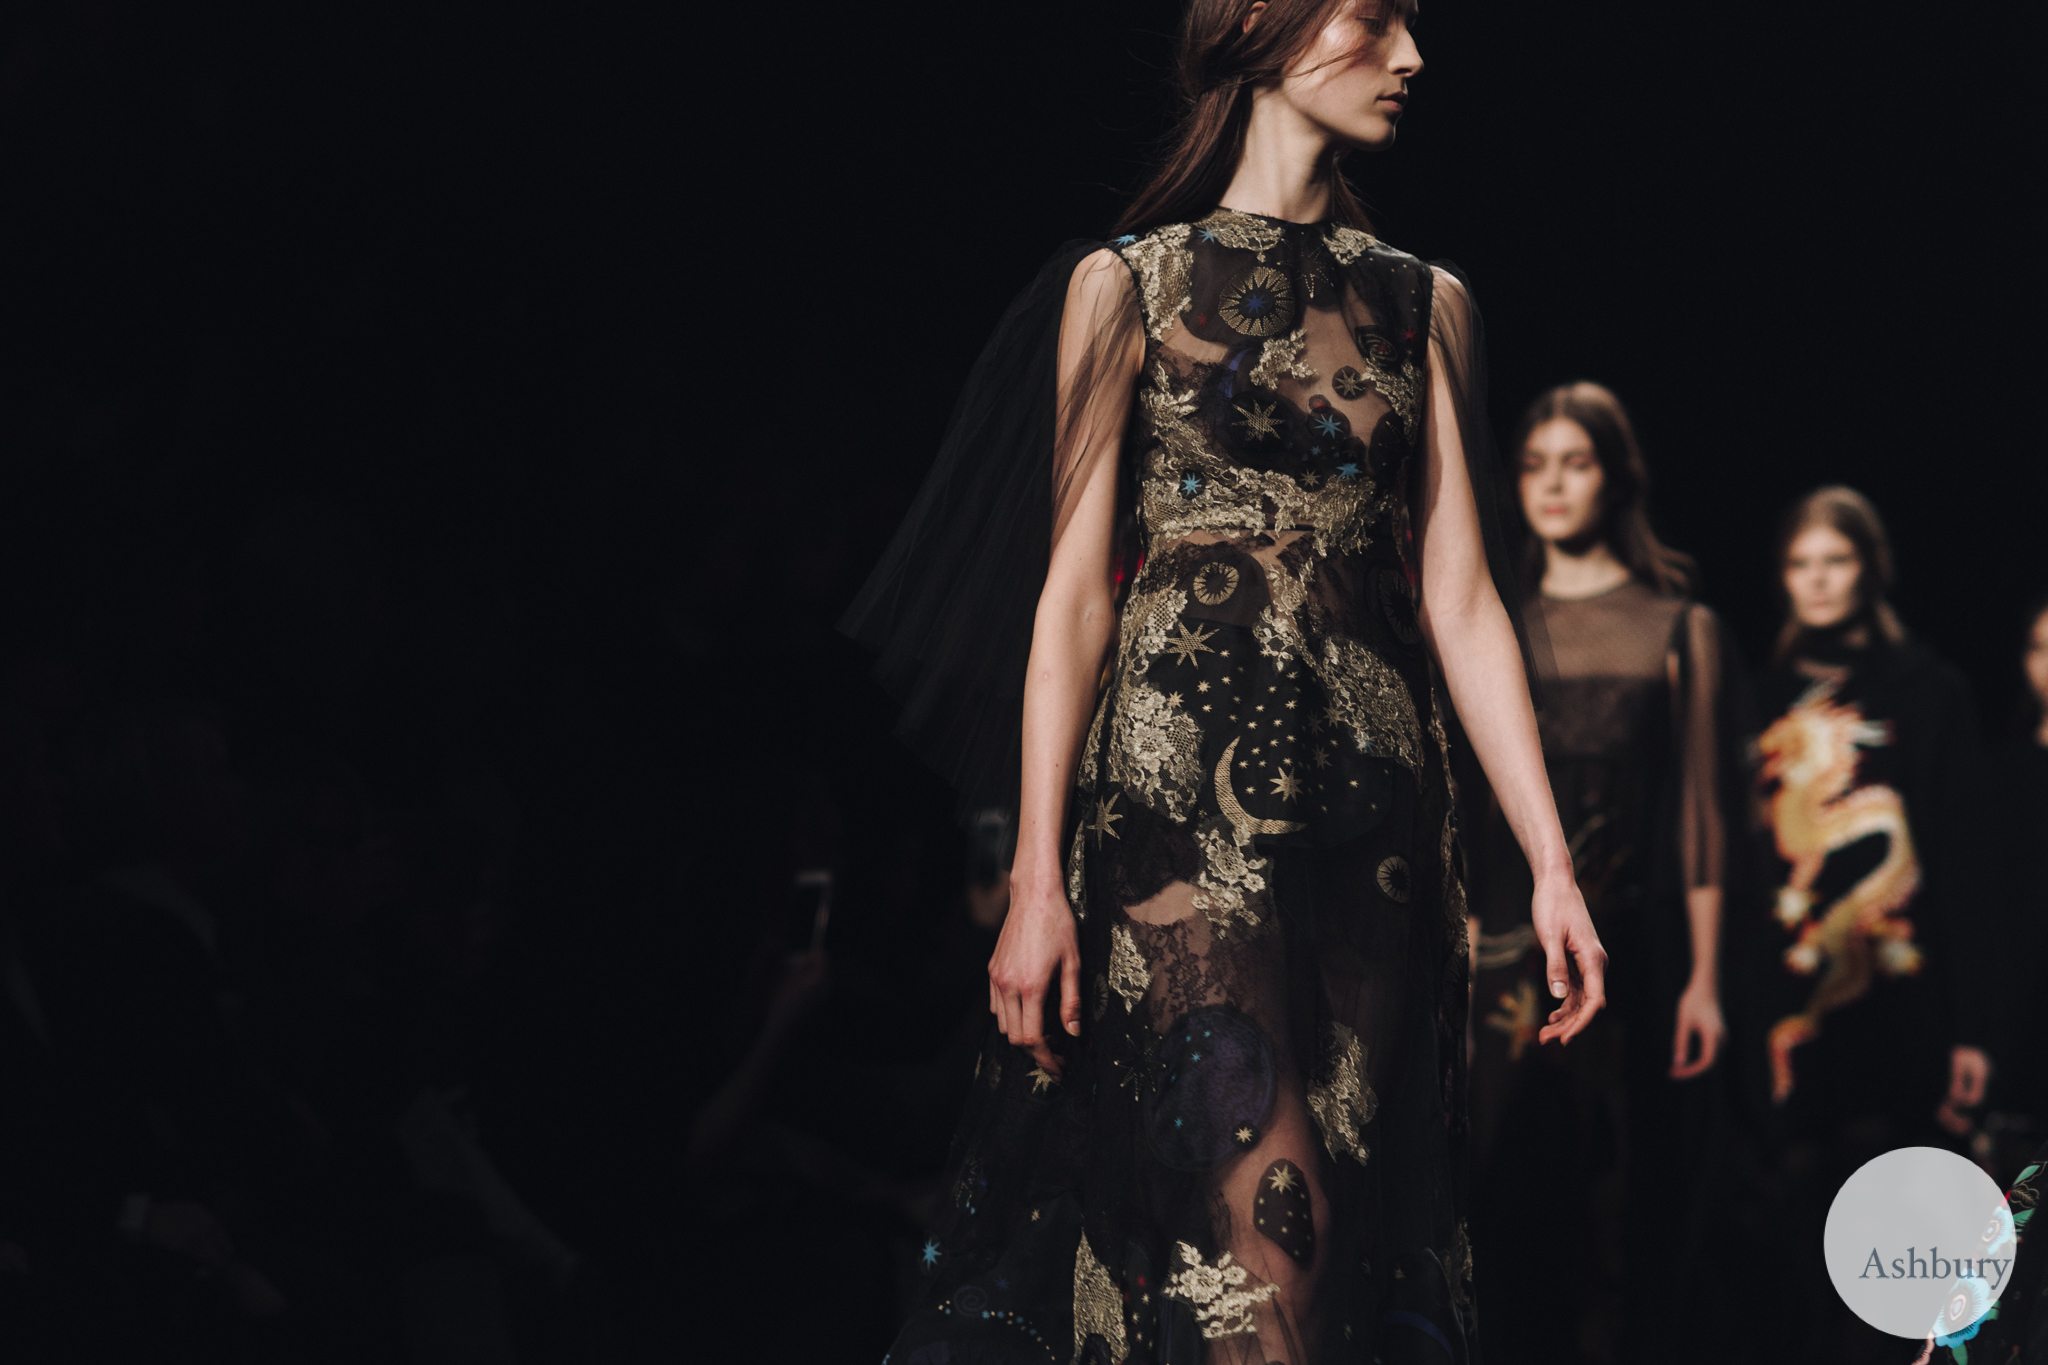 valentino fall winter 2015 - julia bergshoeff 3